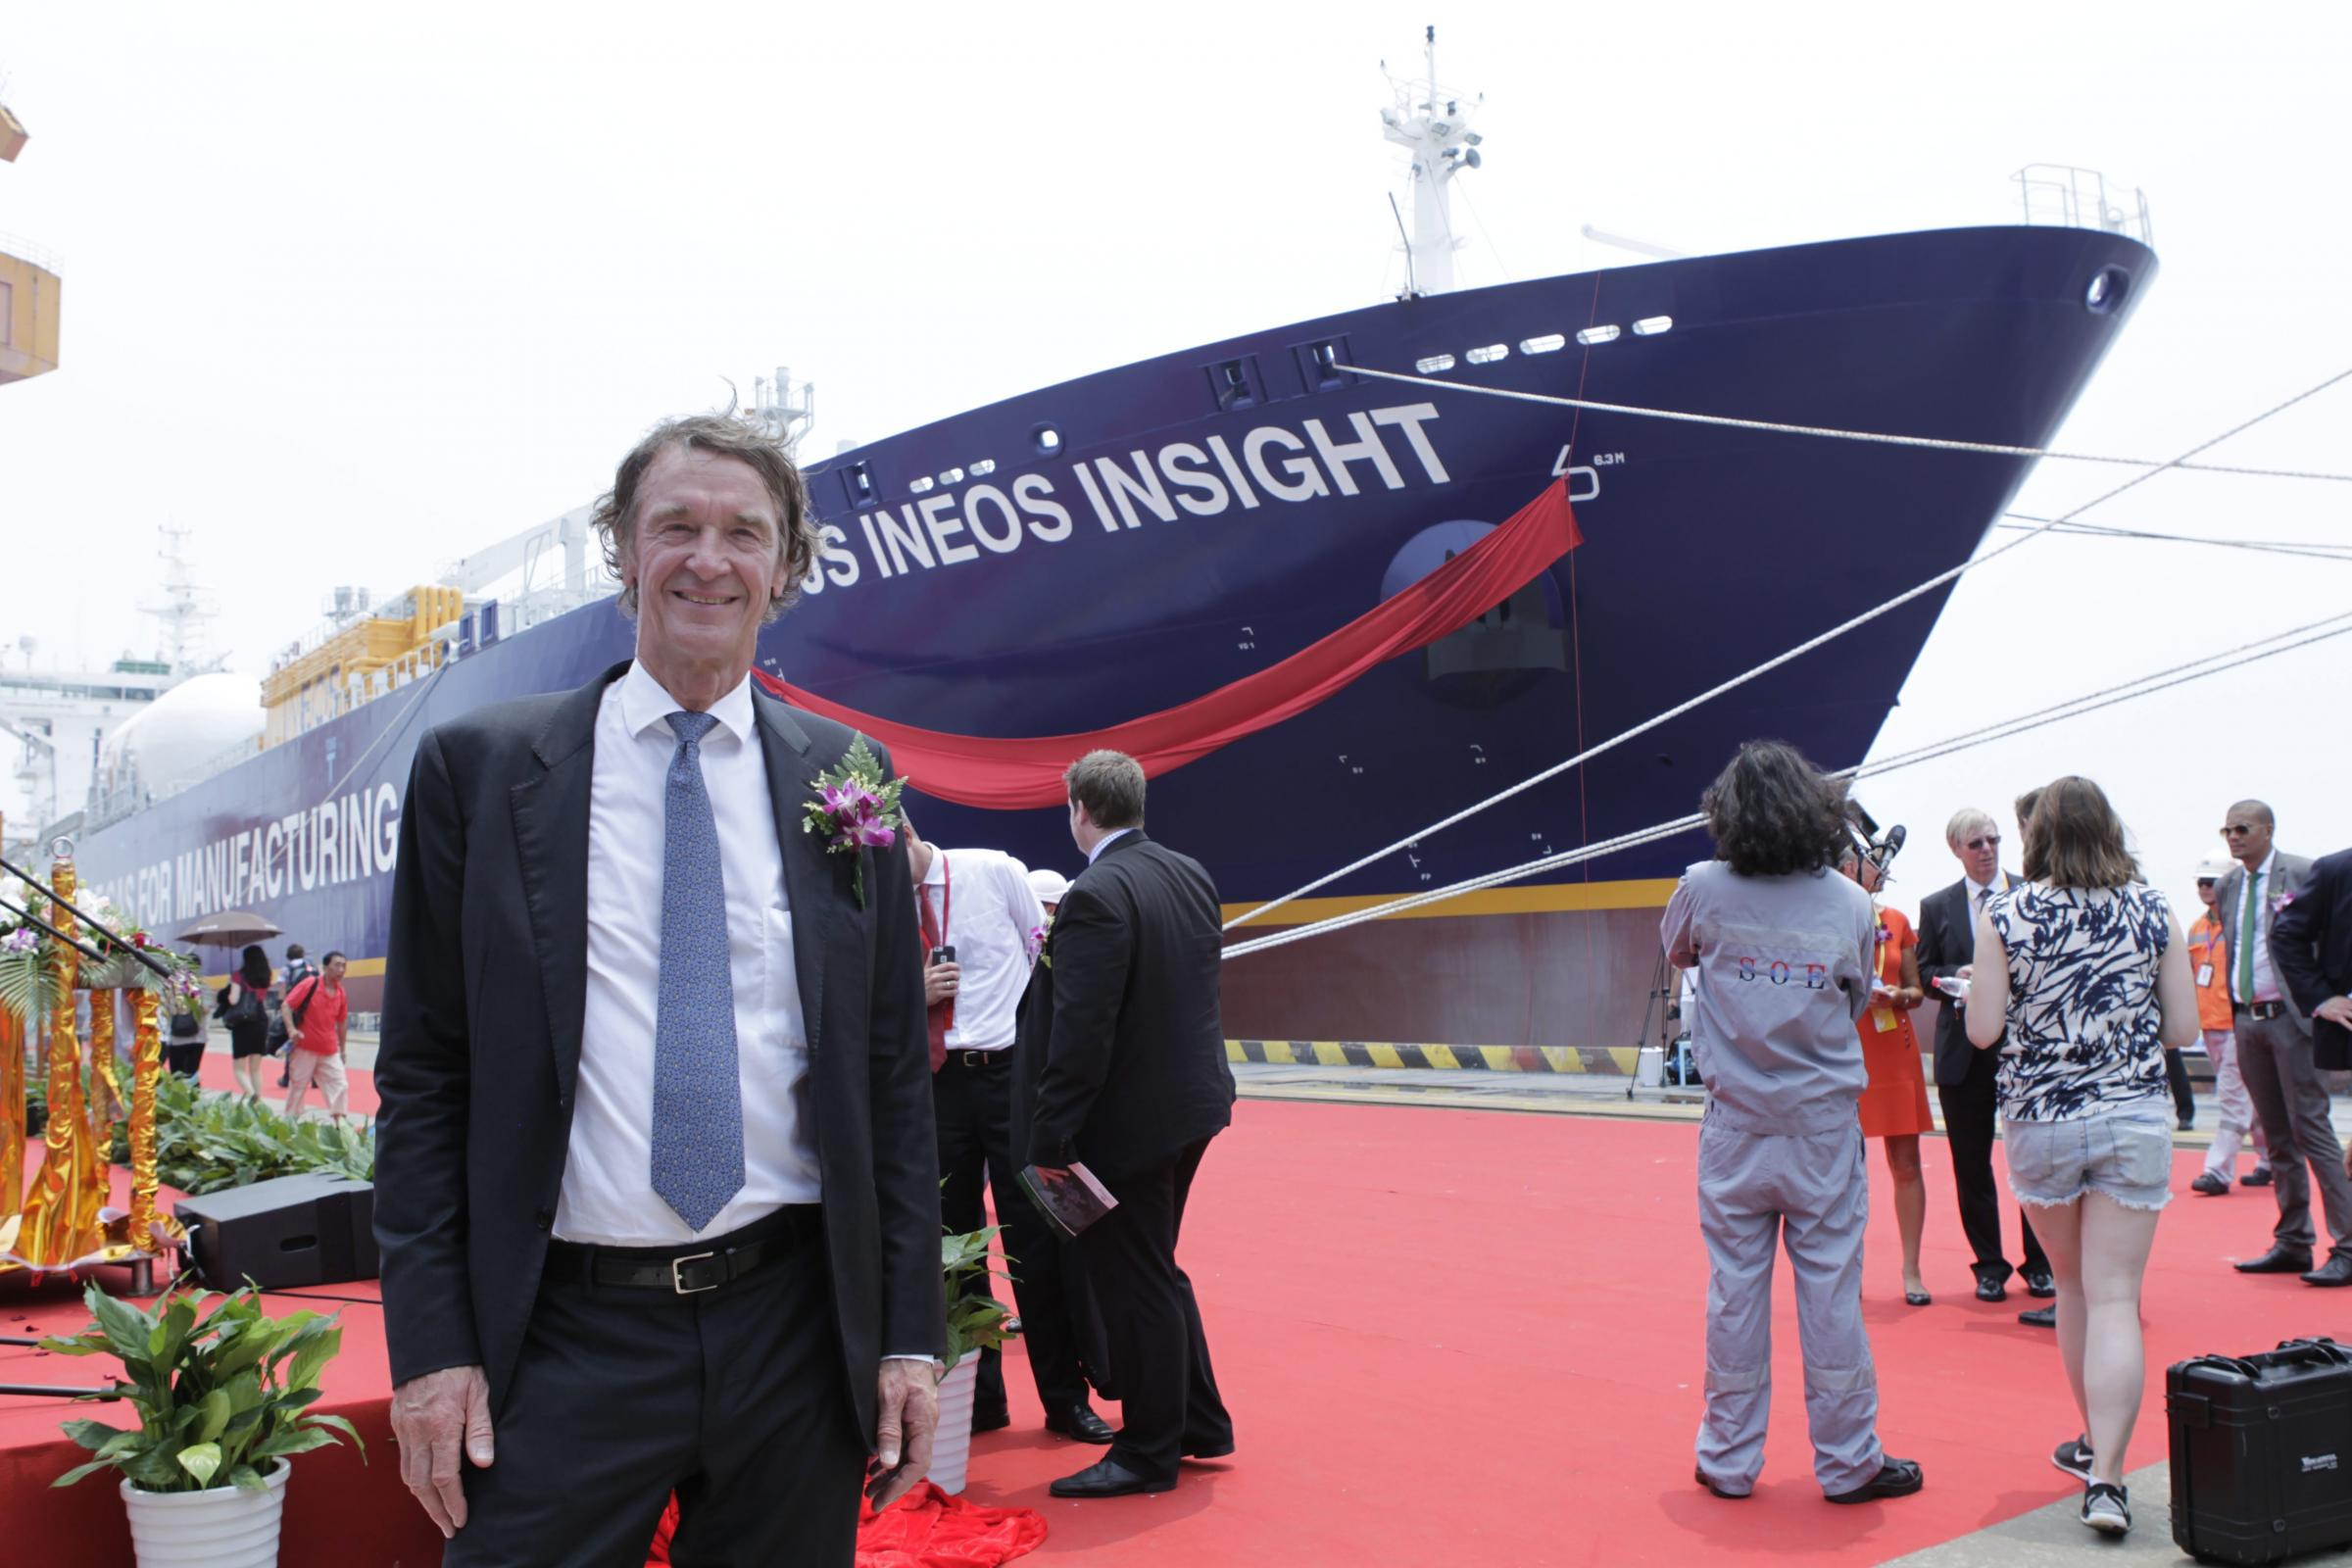 INEOS boss Jim Ratcliffe with one of the giant purpose-built Ineos ships that will transport fracked gas from America to Scotland